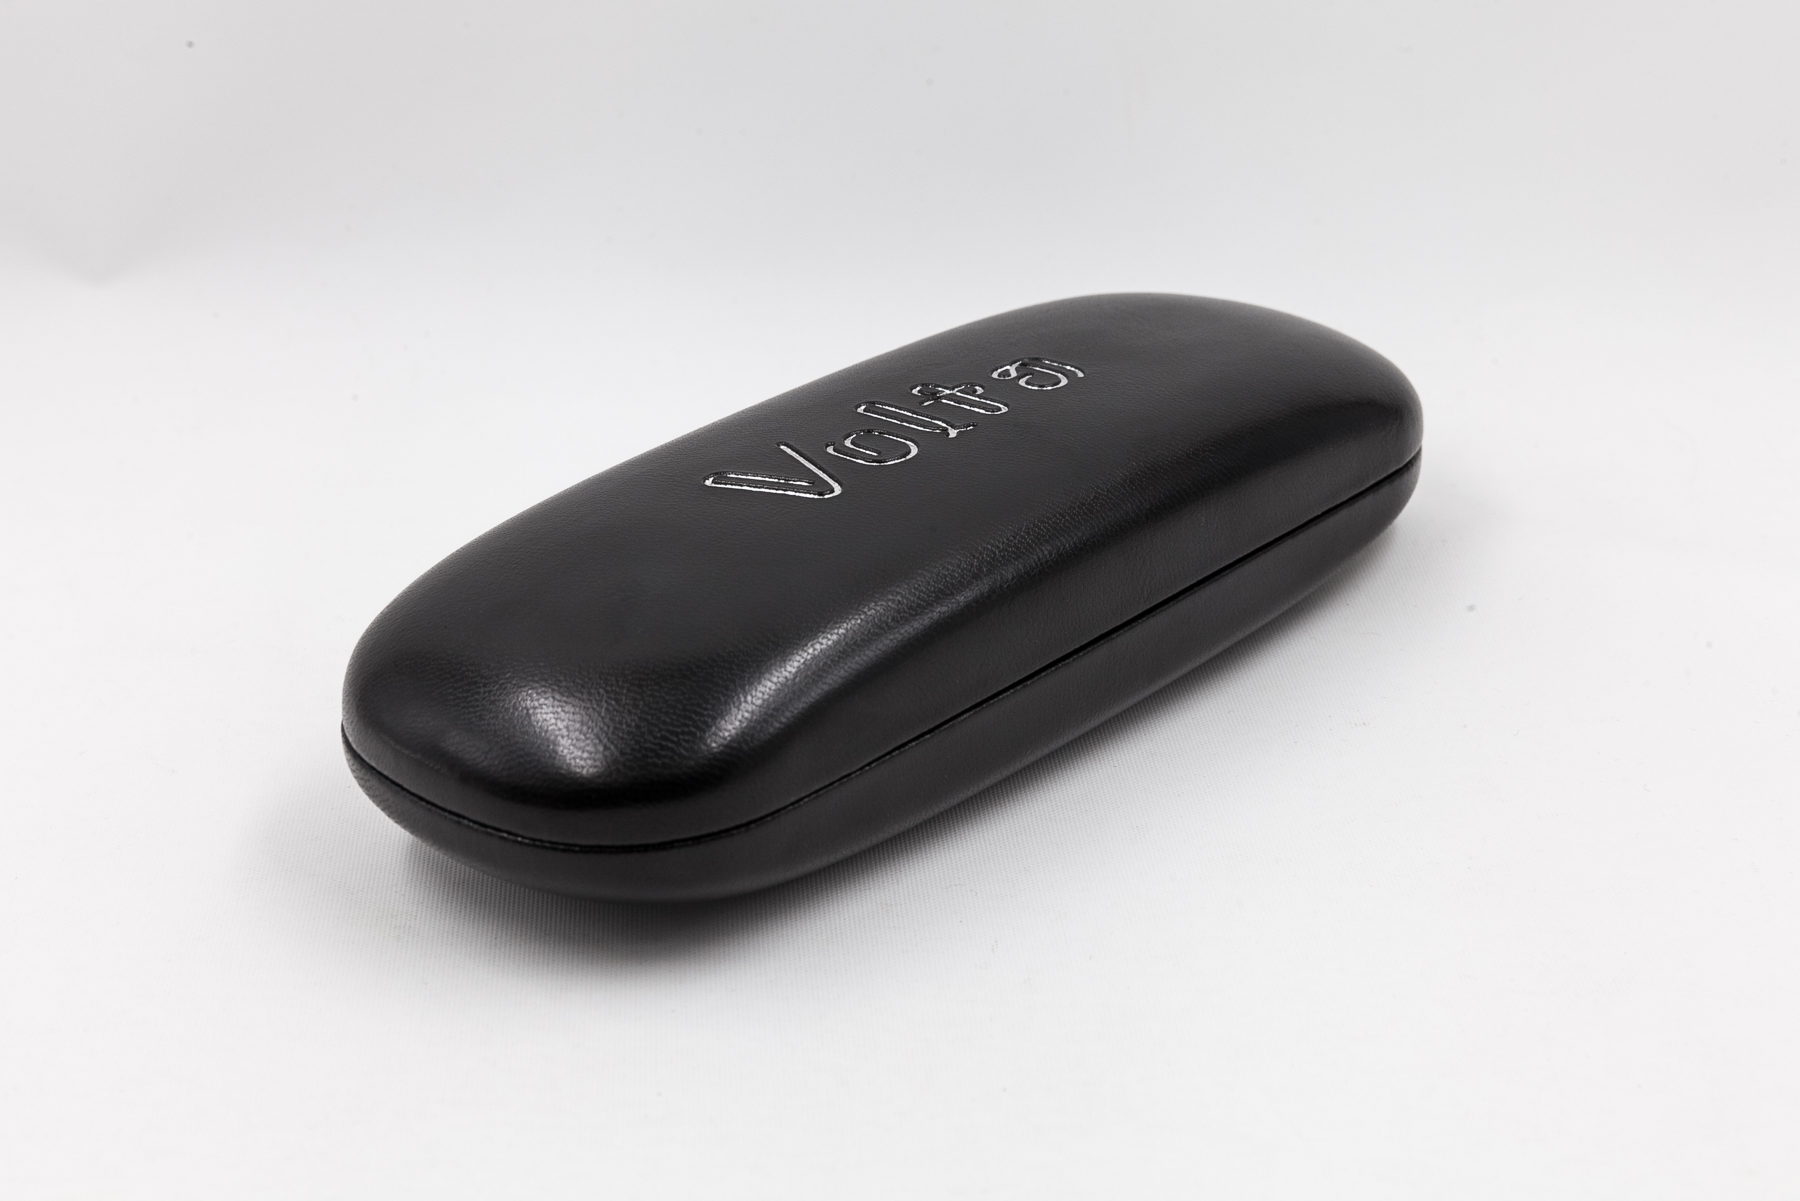 2021 Glasses Case Sunglasses Black Glasses Case Printed with The LOGO